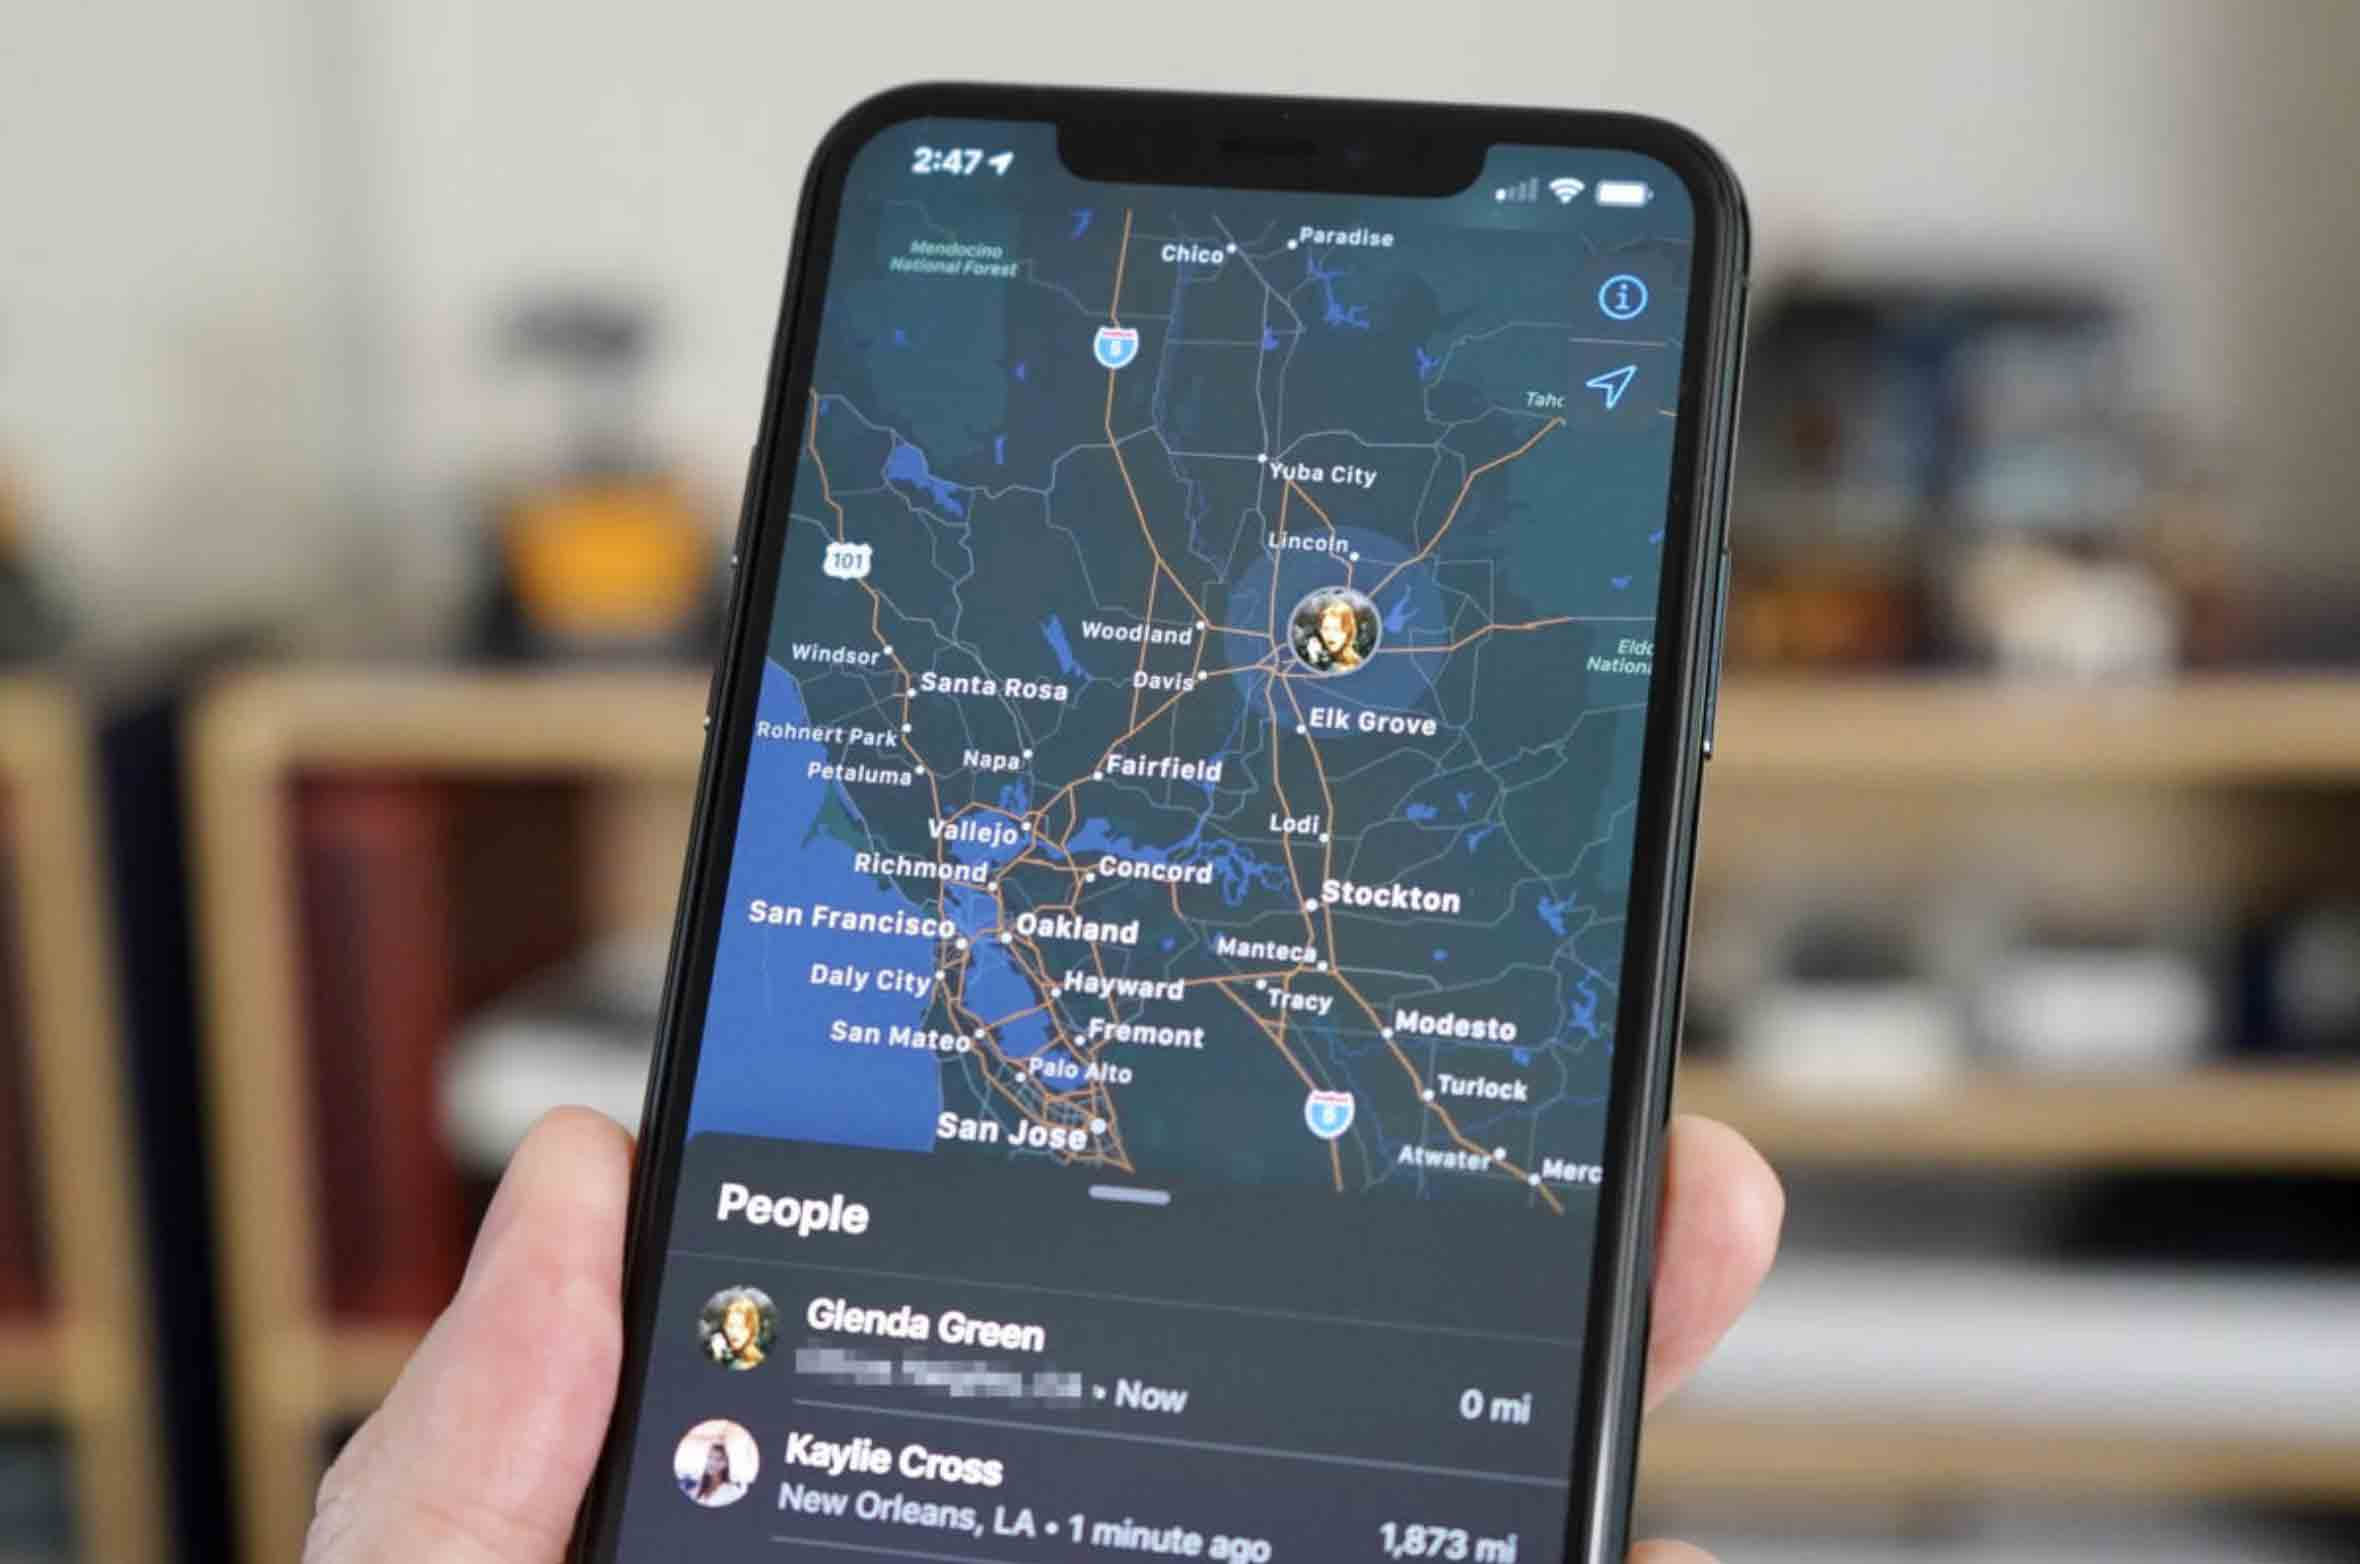 5 Best Apps To Find Somone's Phone Location